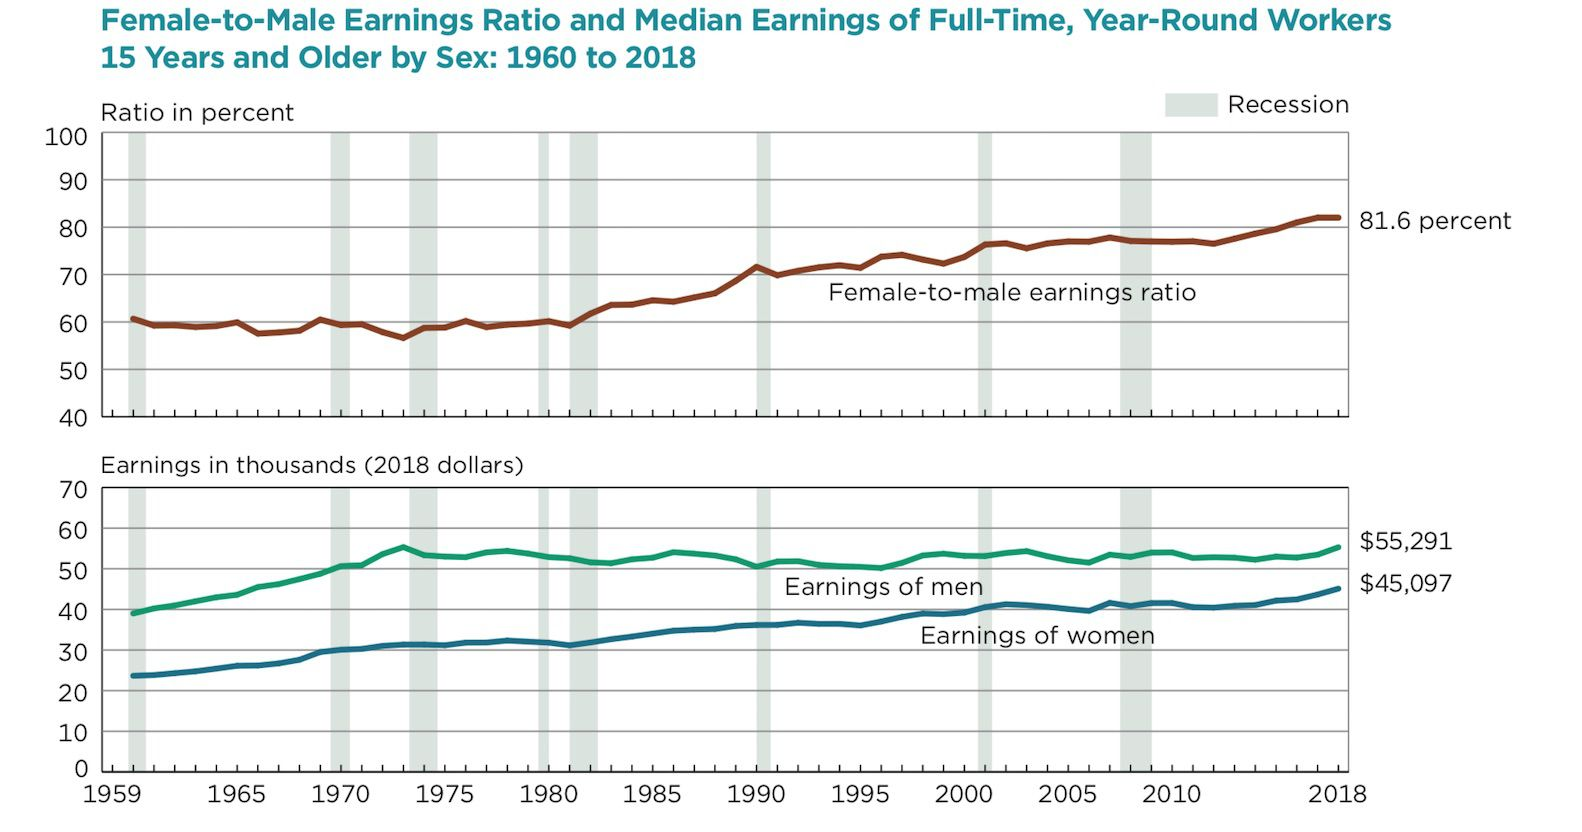 Female-to-Male Earnings Ratio for Full-time Workers